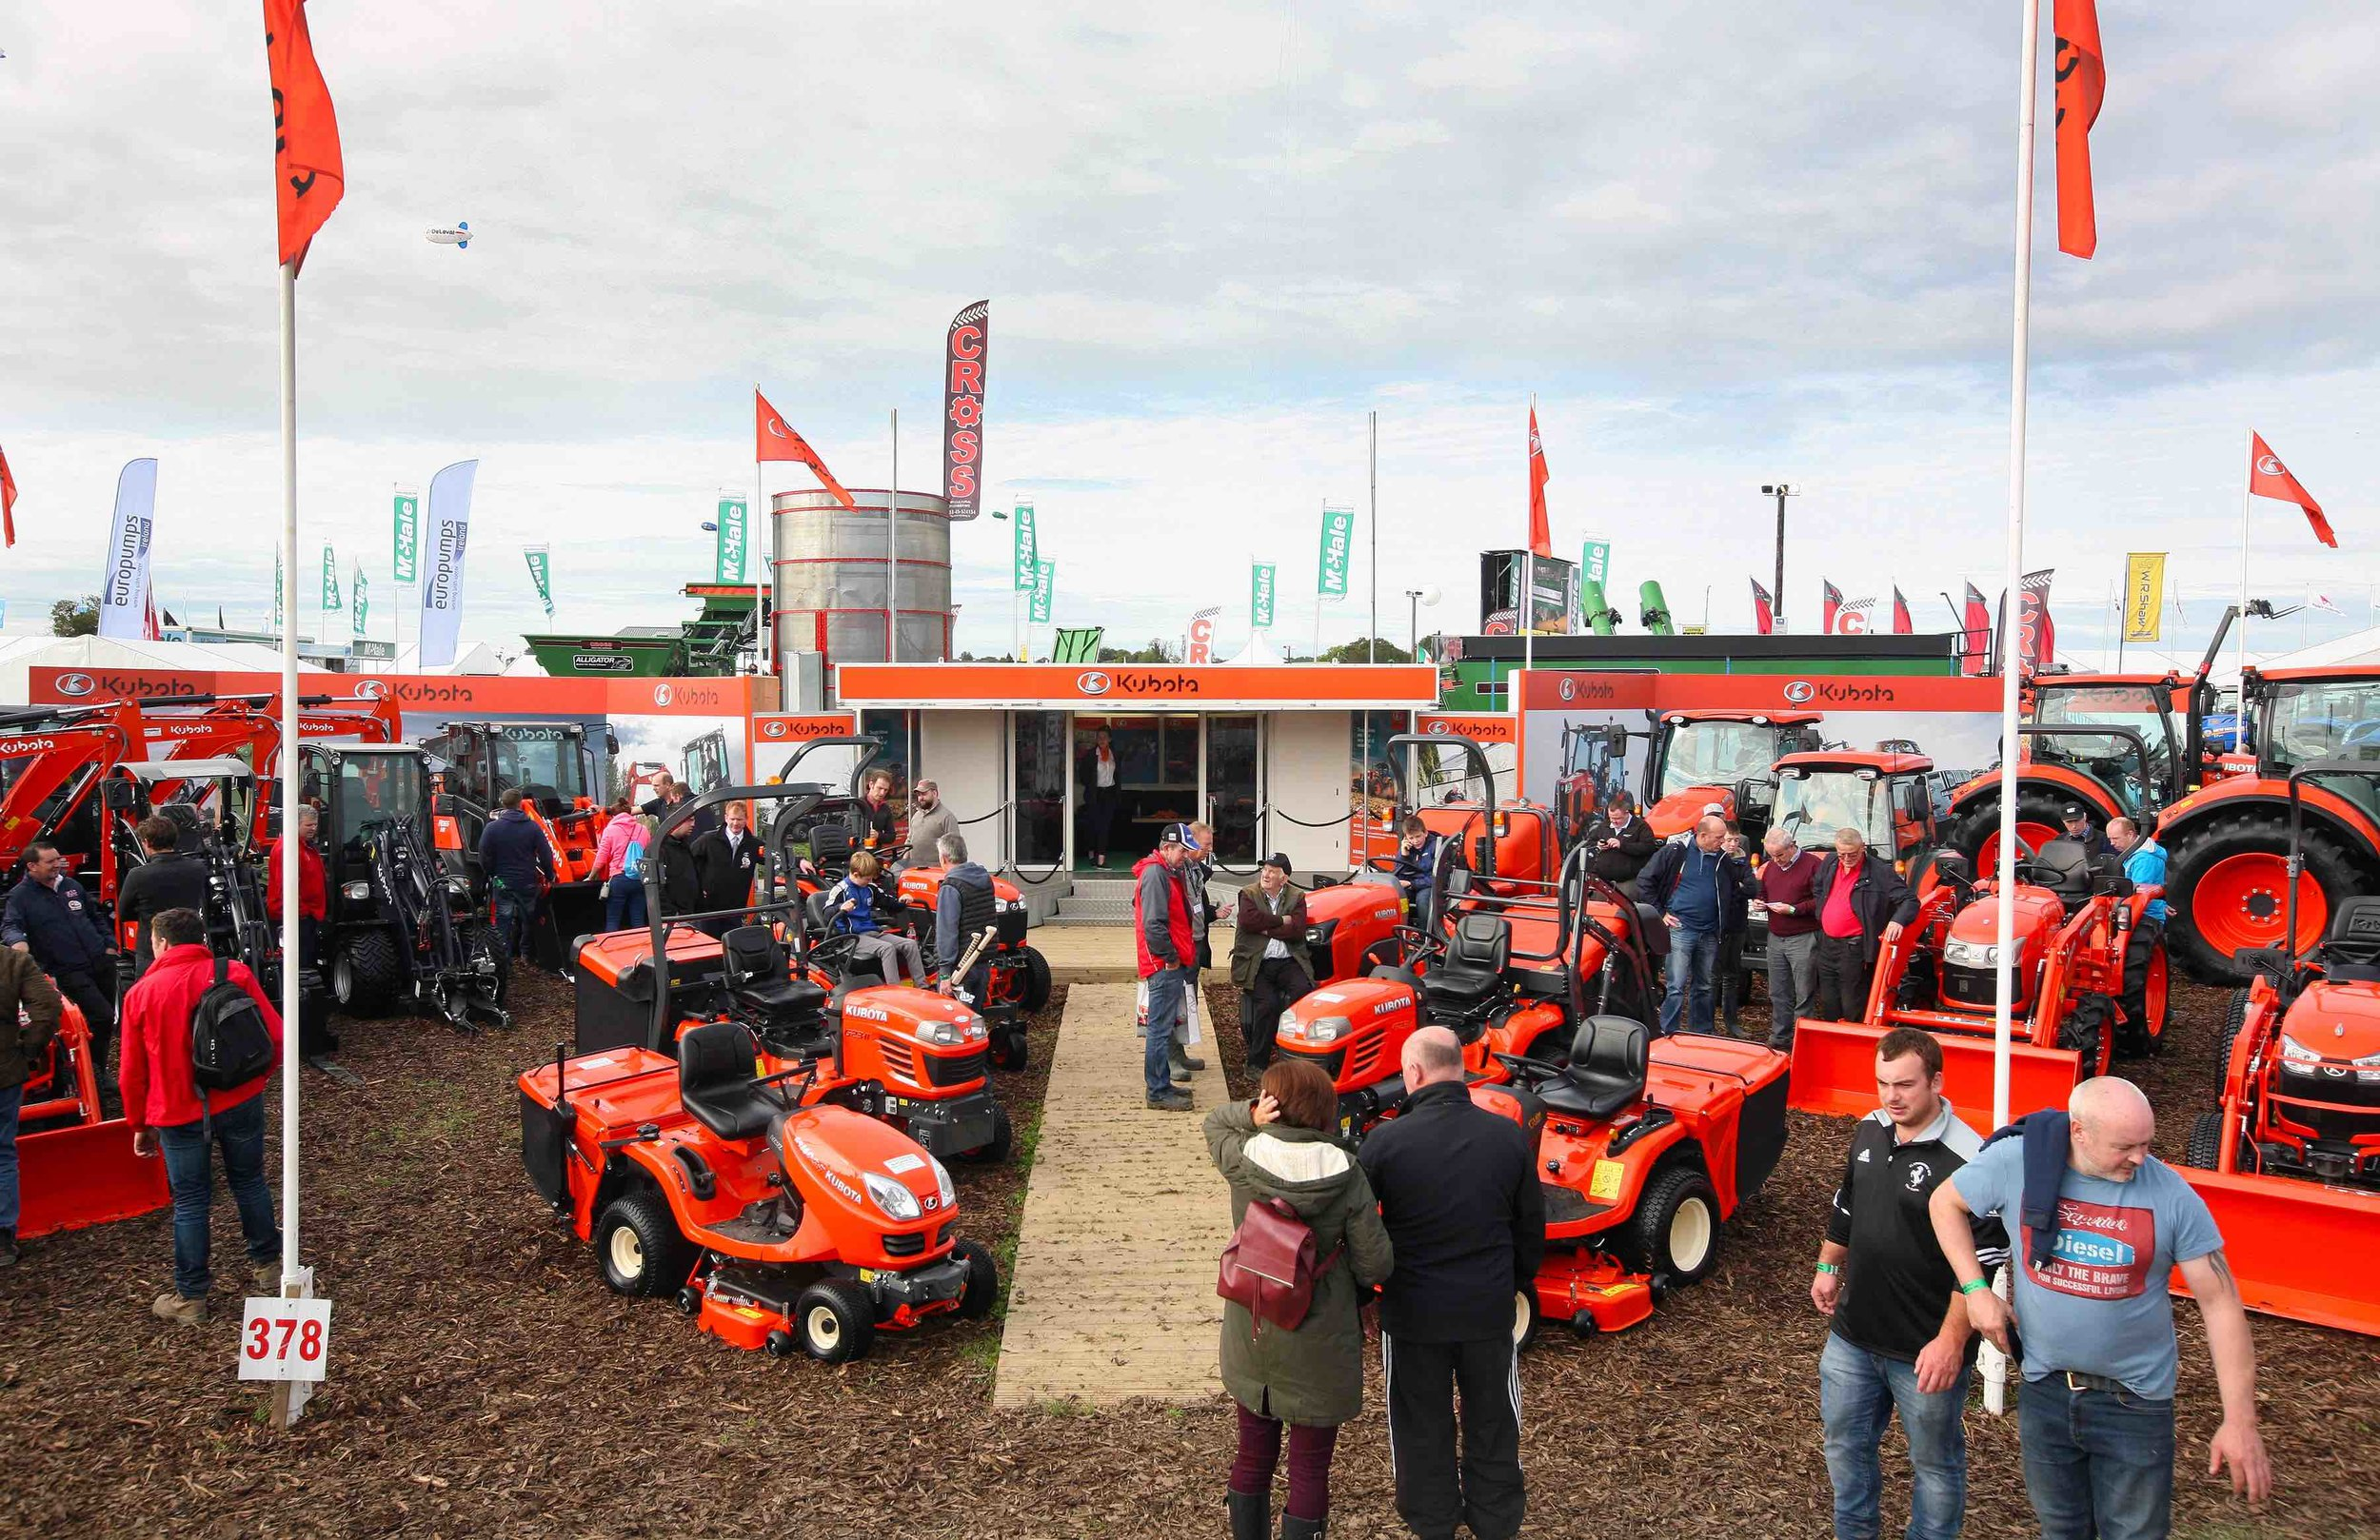 Kubota Exhibition Stand at The National Ploughing Championships 2017